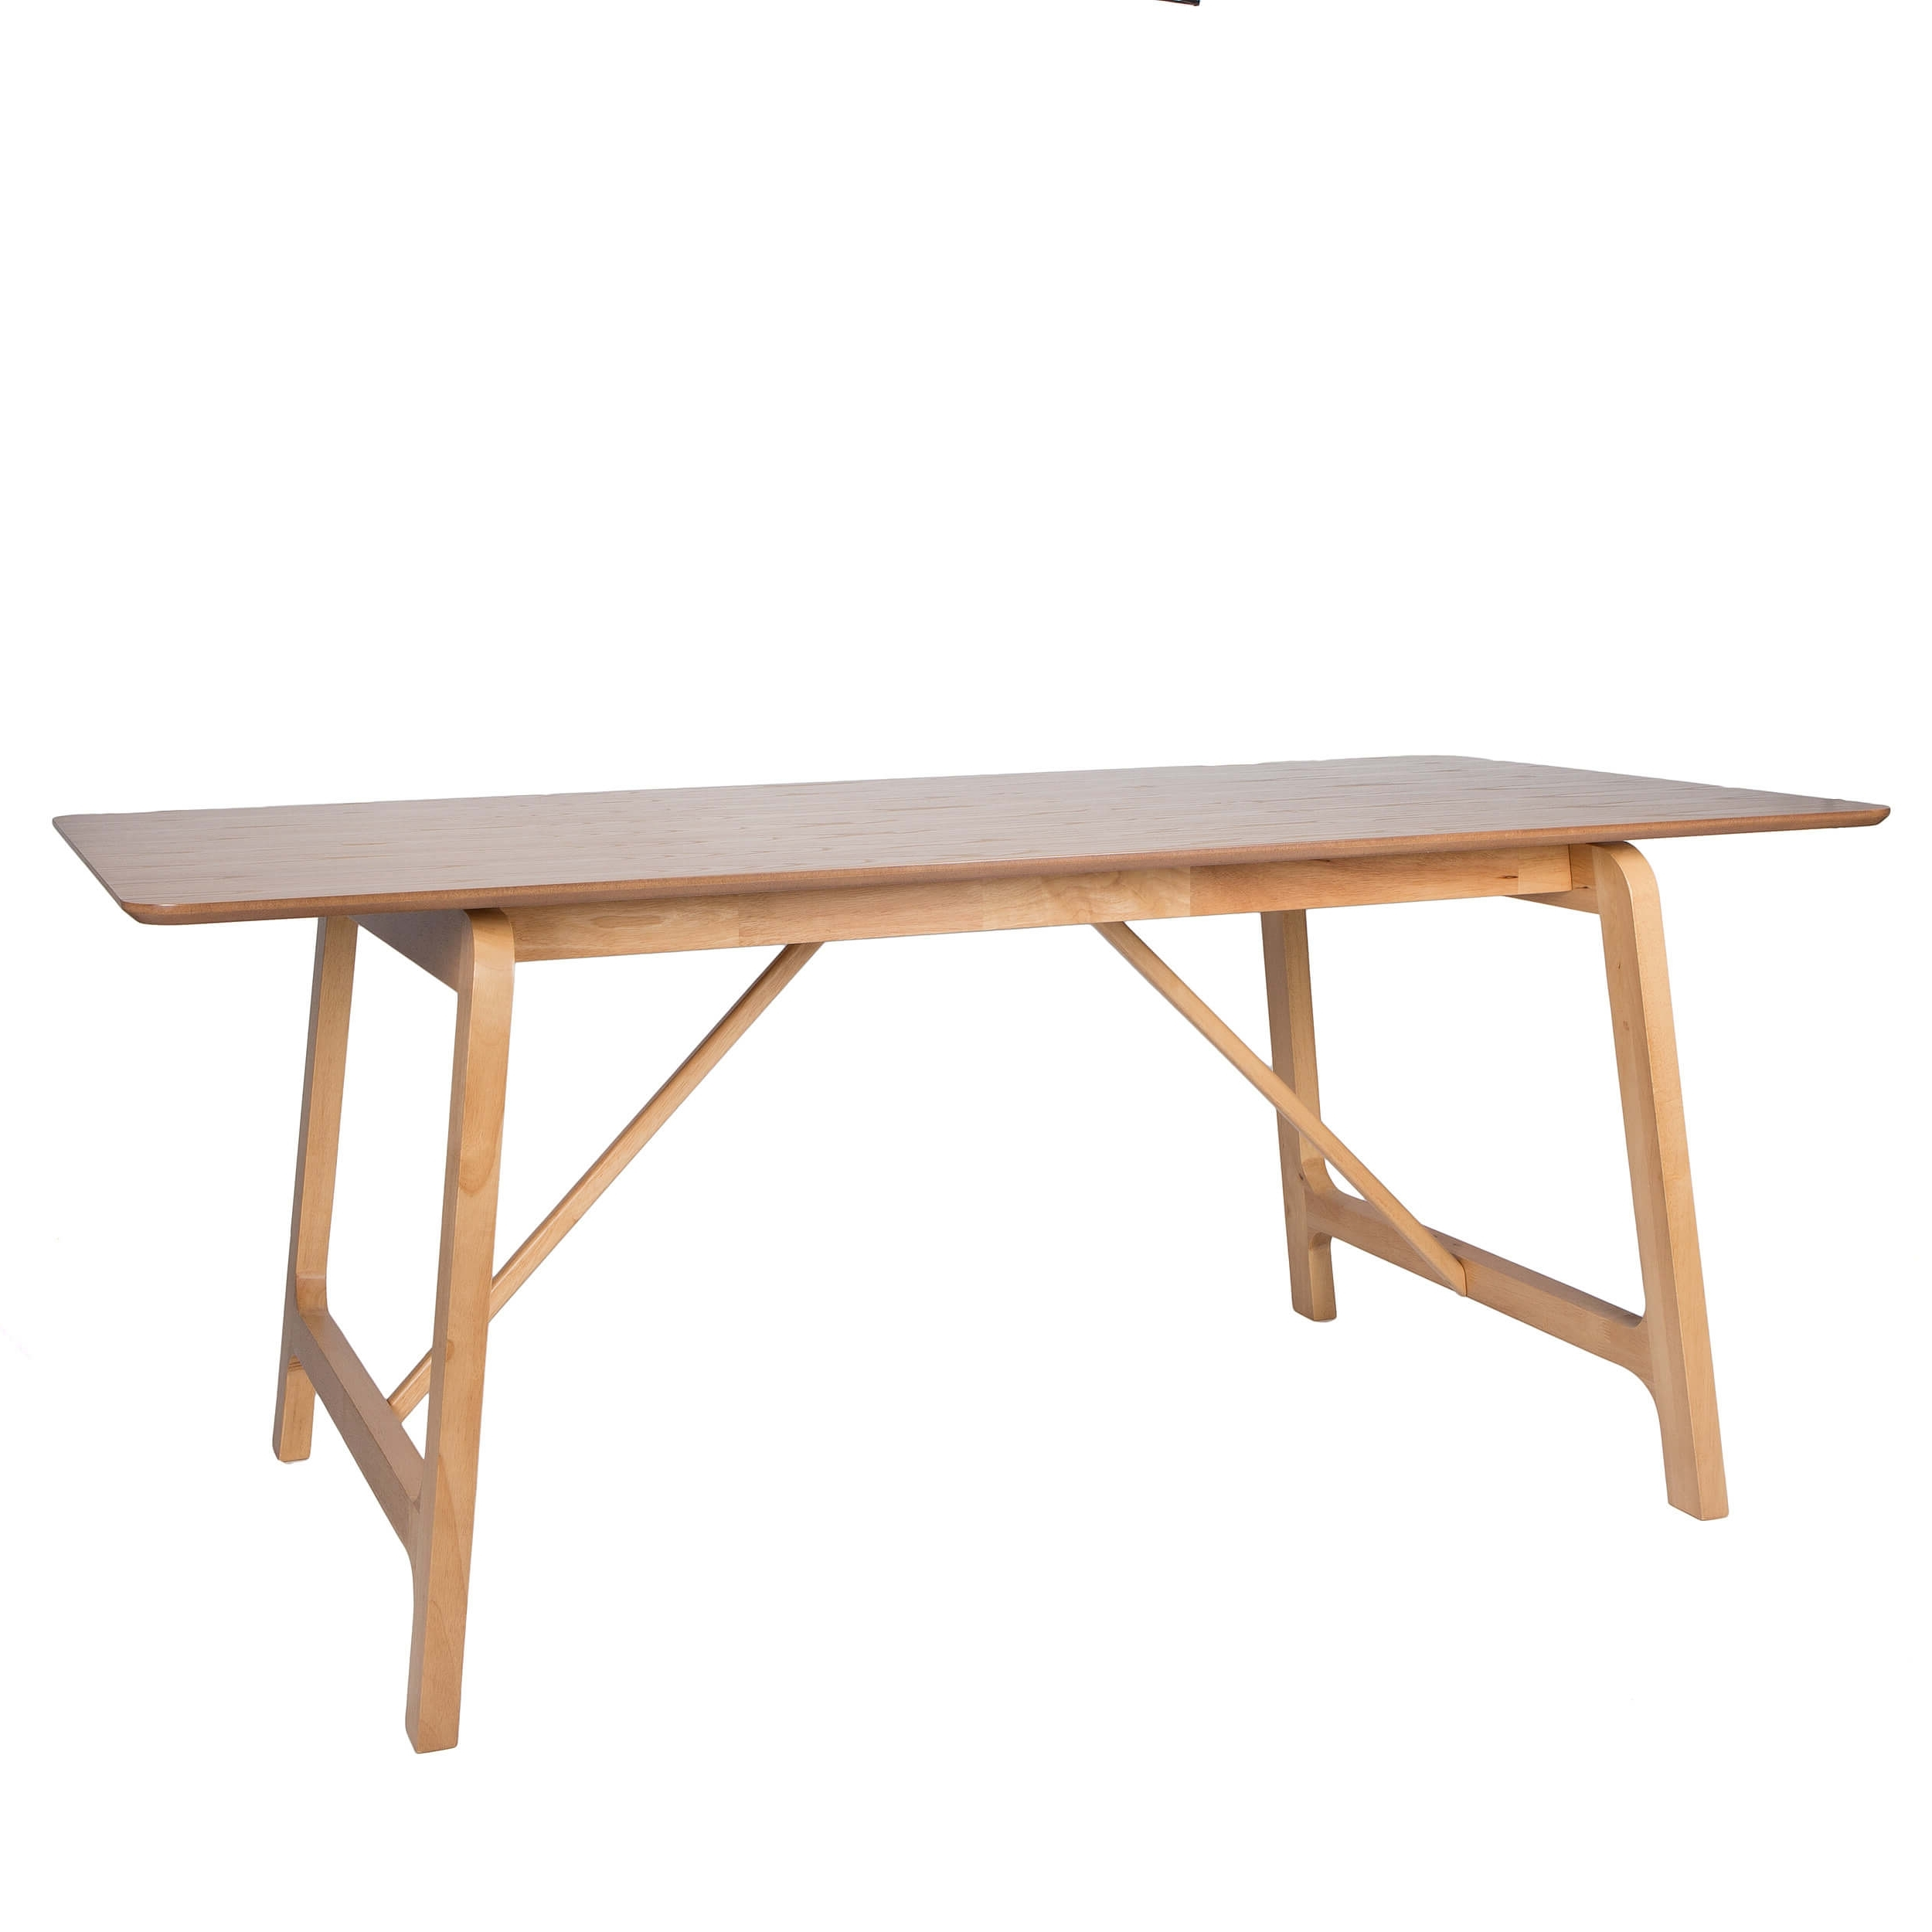 Most Current Trestle Dining Table In Warm Oak – Seats 6 – Sienna For Outdoor Sienna Dining Tables (View 7 of 25)